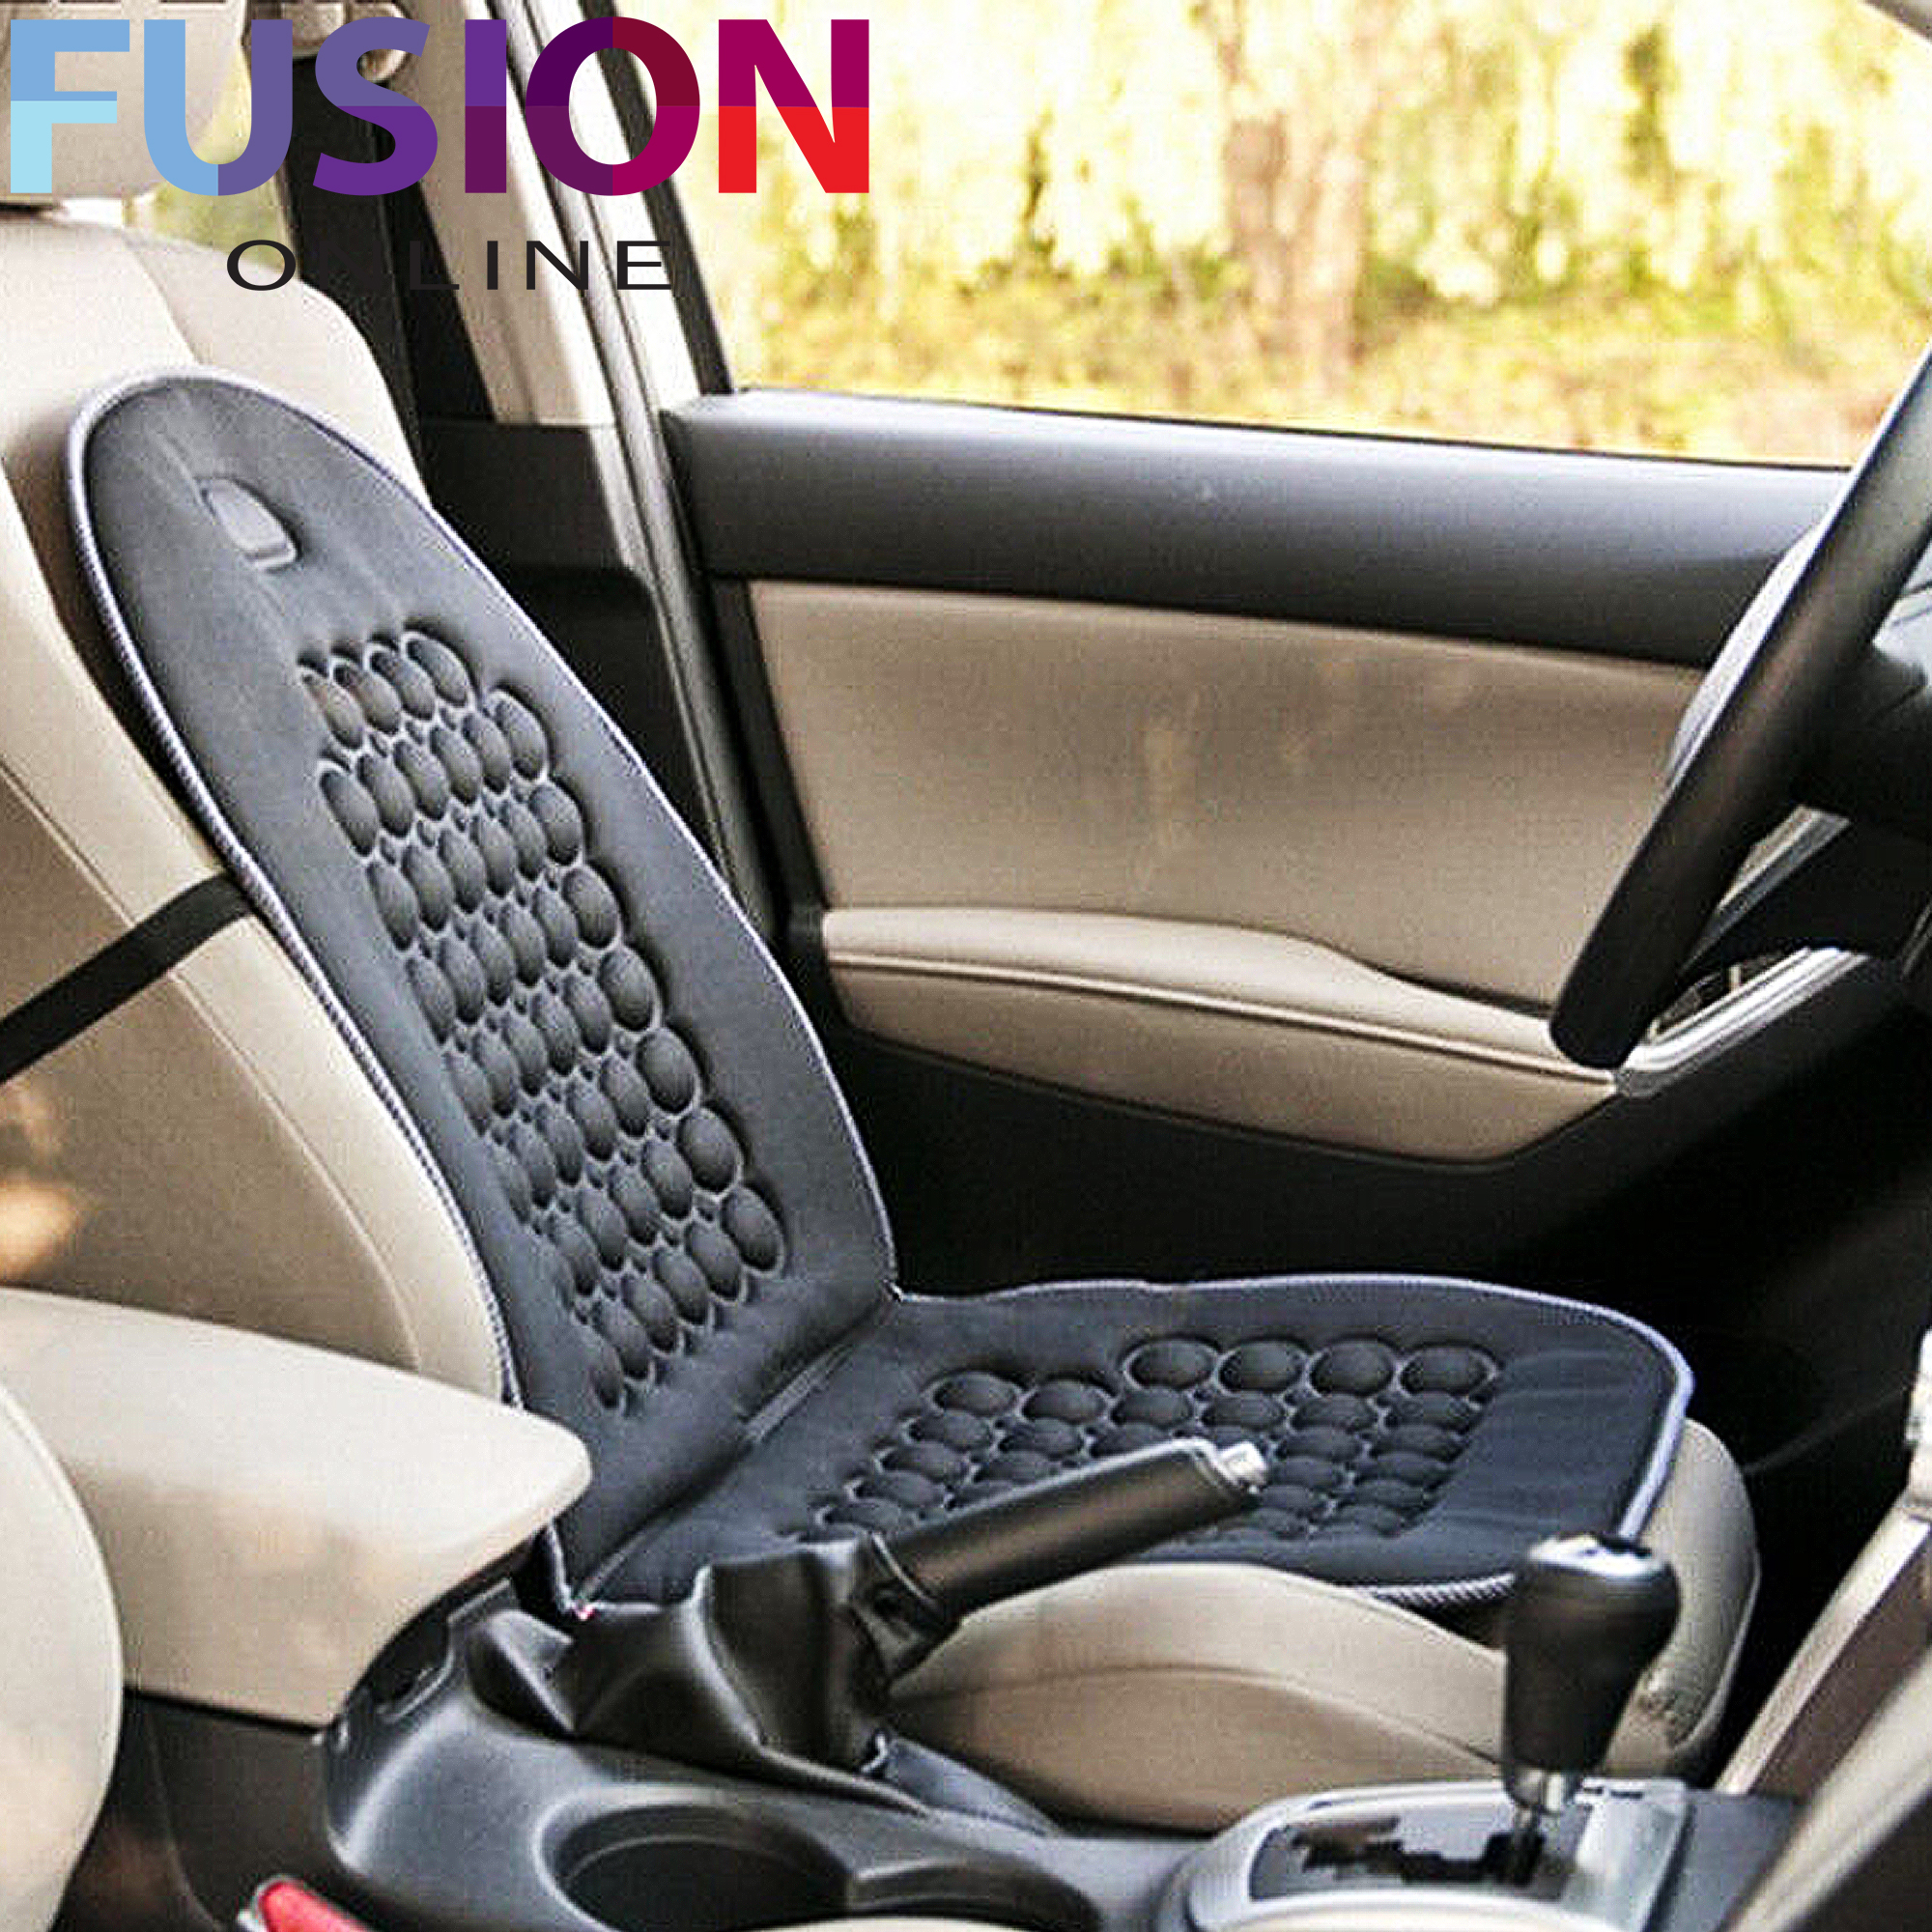 CAR VAN SEAT CUSHION ORTHOPAEDIC FRONT COVER PROTECT BACK SUPPORT